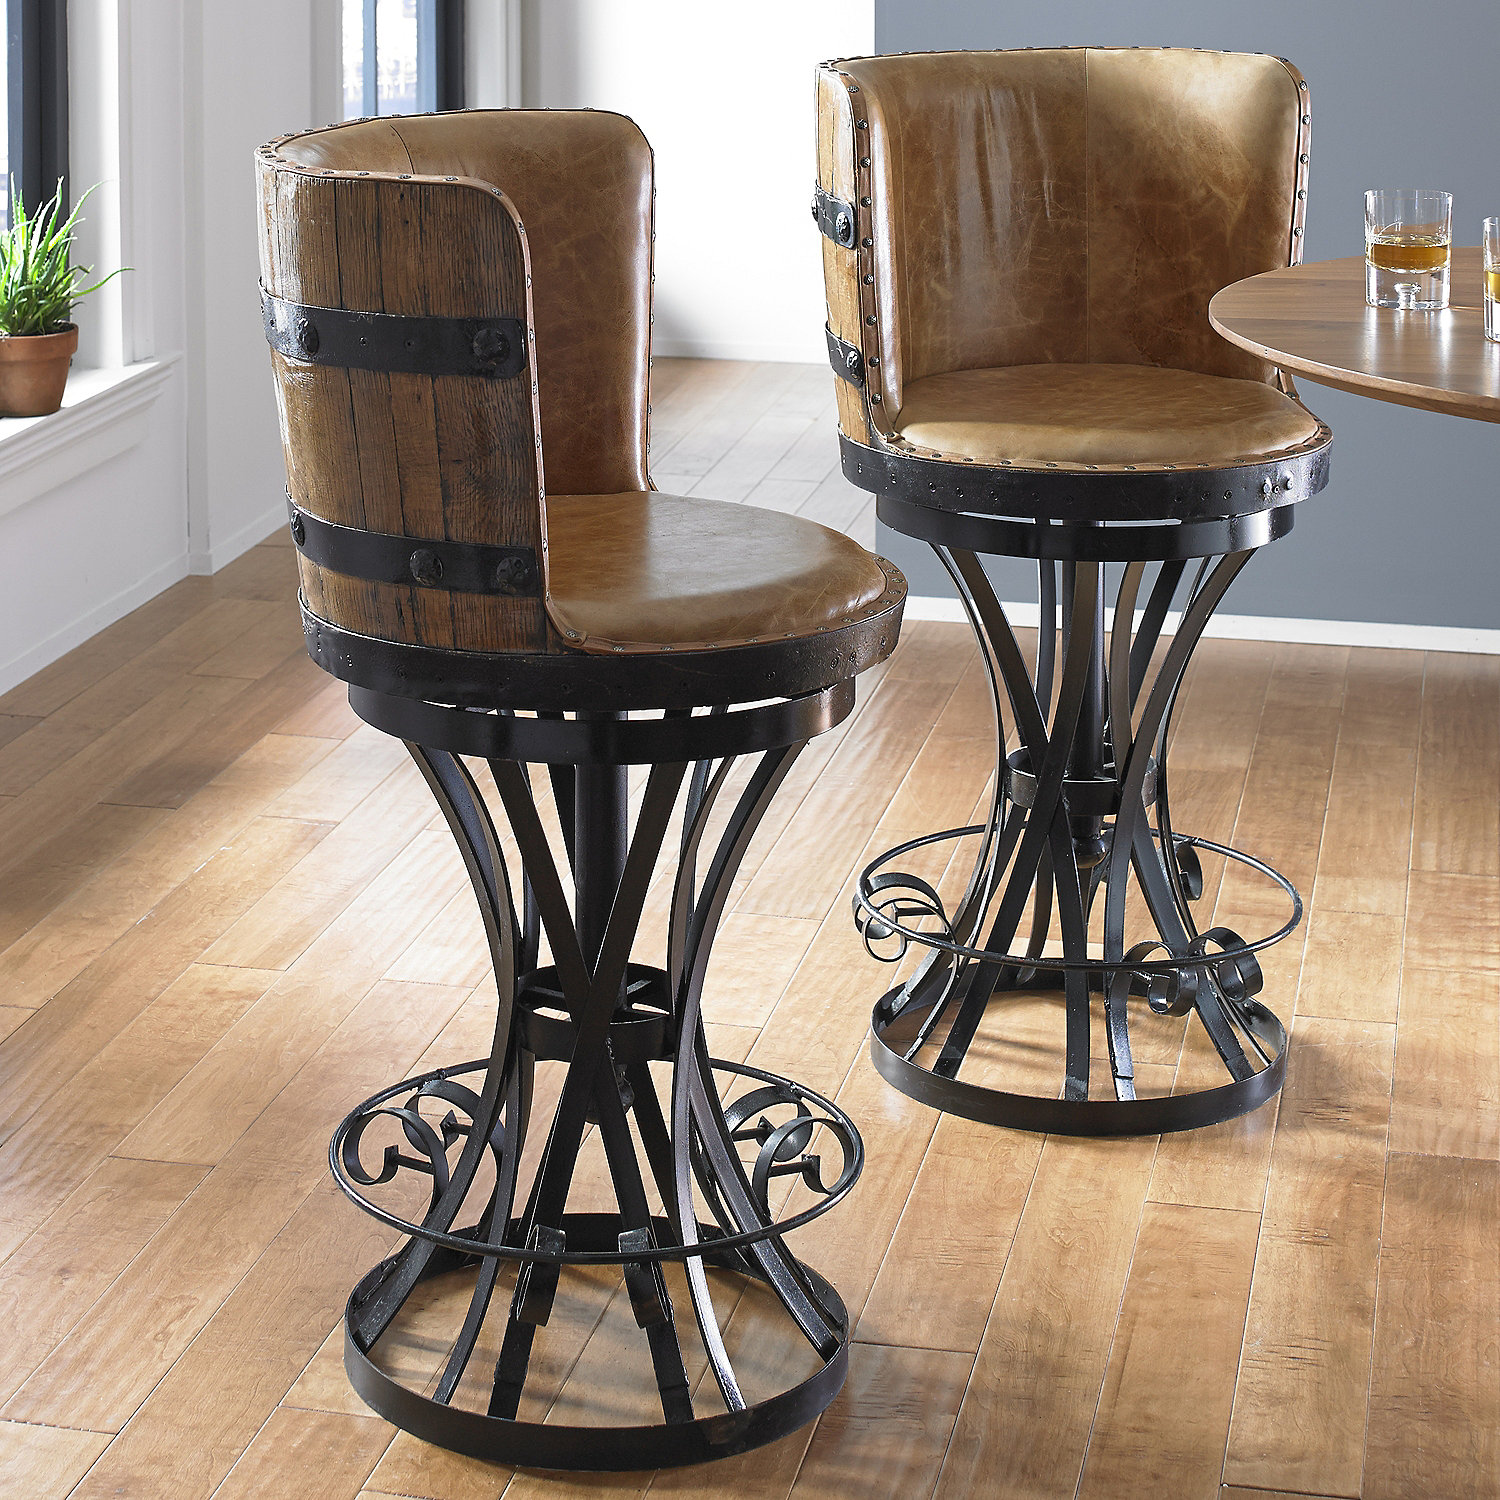 Popular Tequila Barrel Stave Stool with Leather Seat - Wine Enthusiast NV93